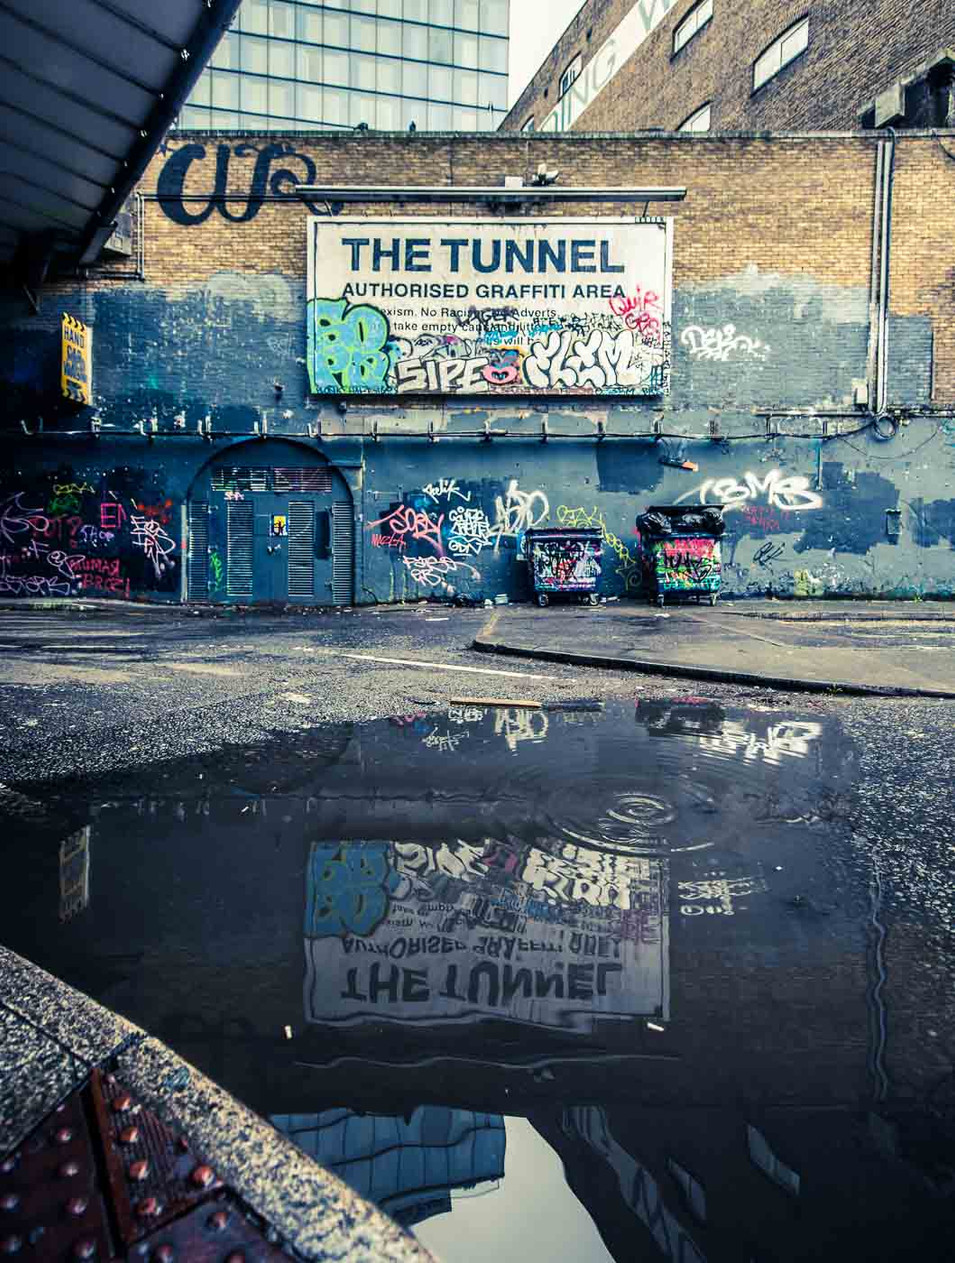 Graffiti_Tunnel_02_web.jpg